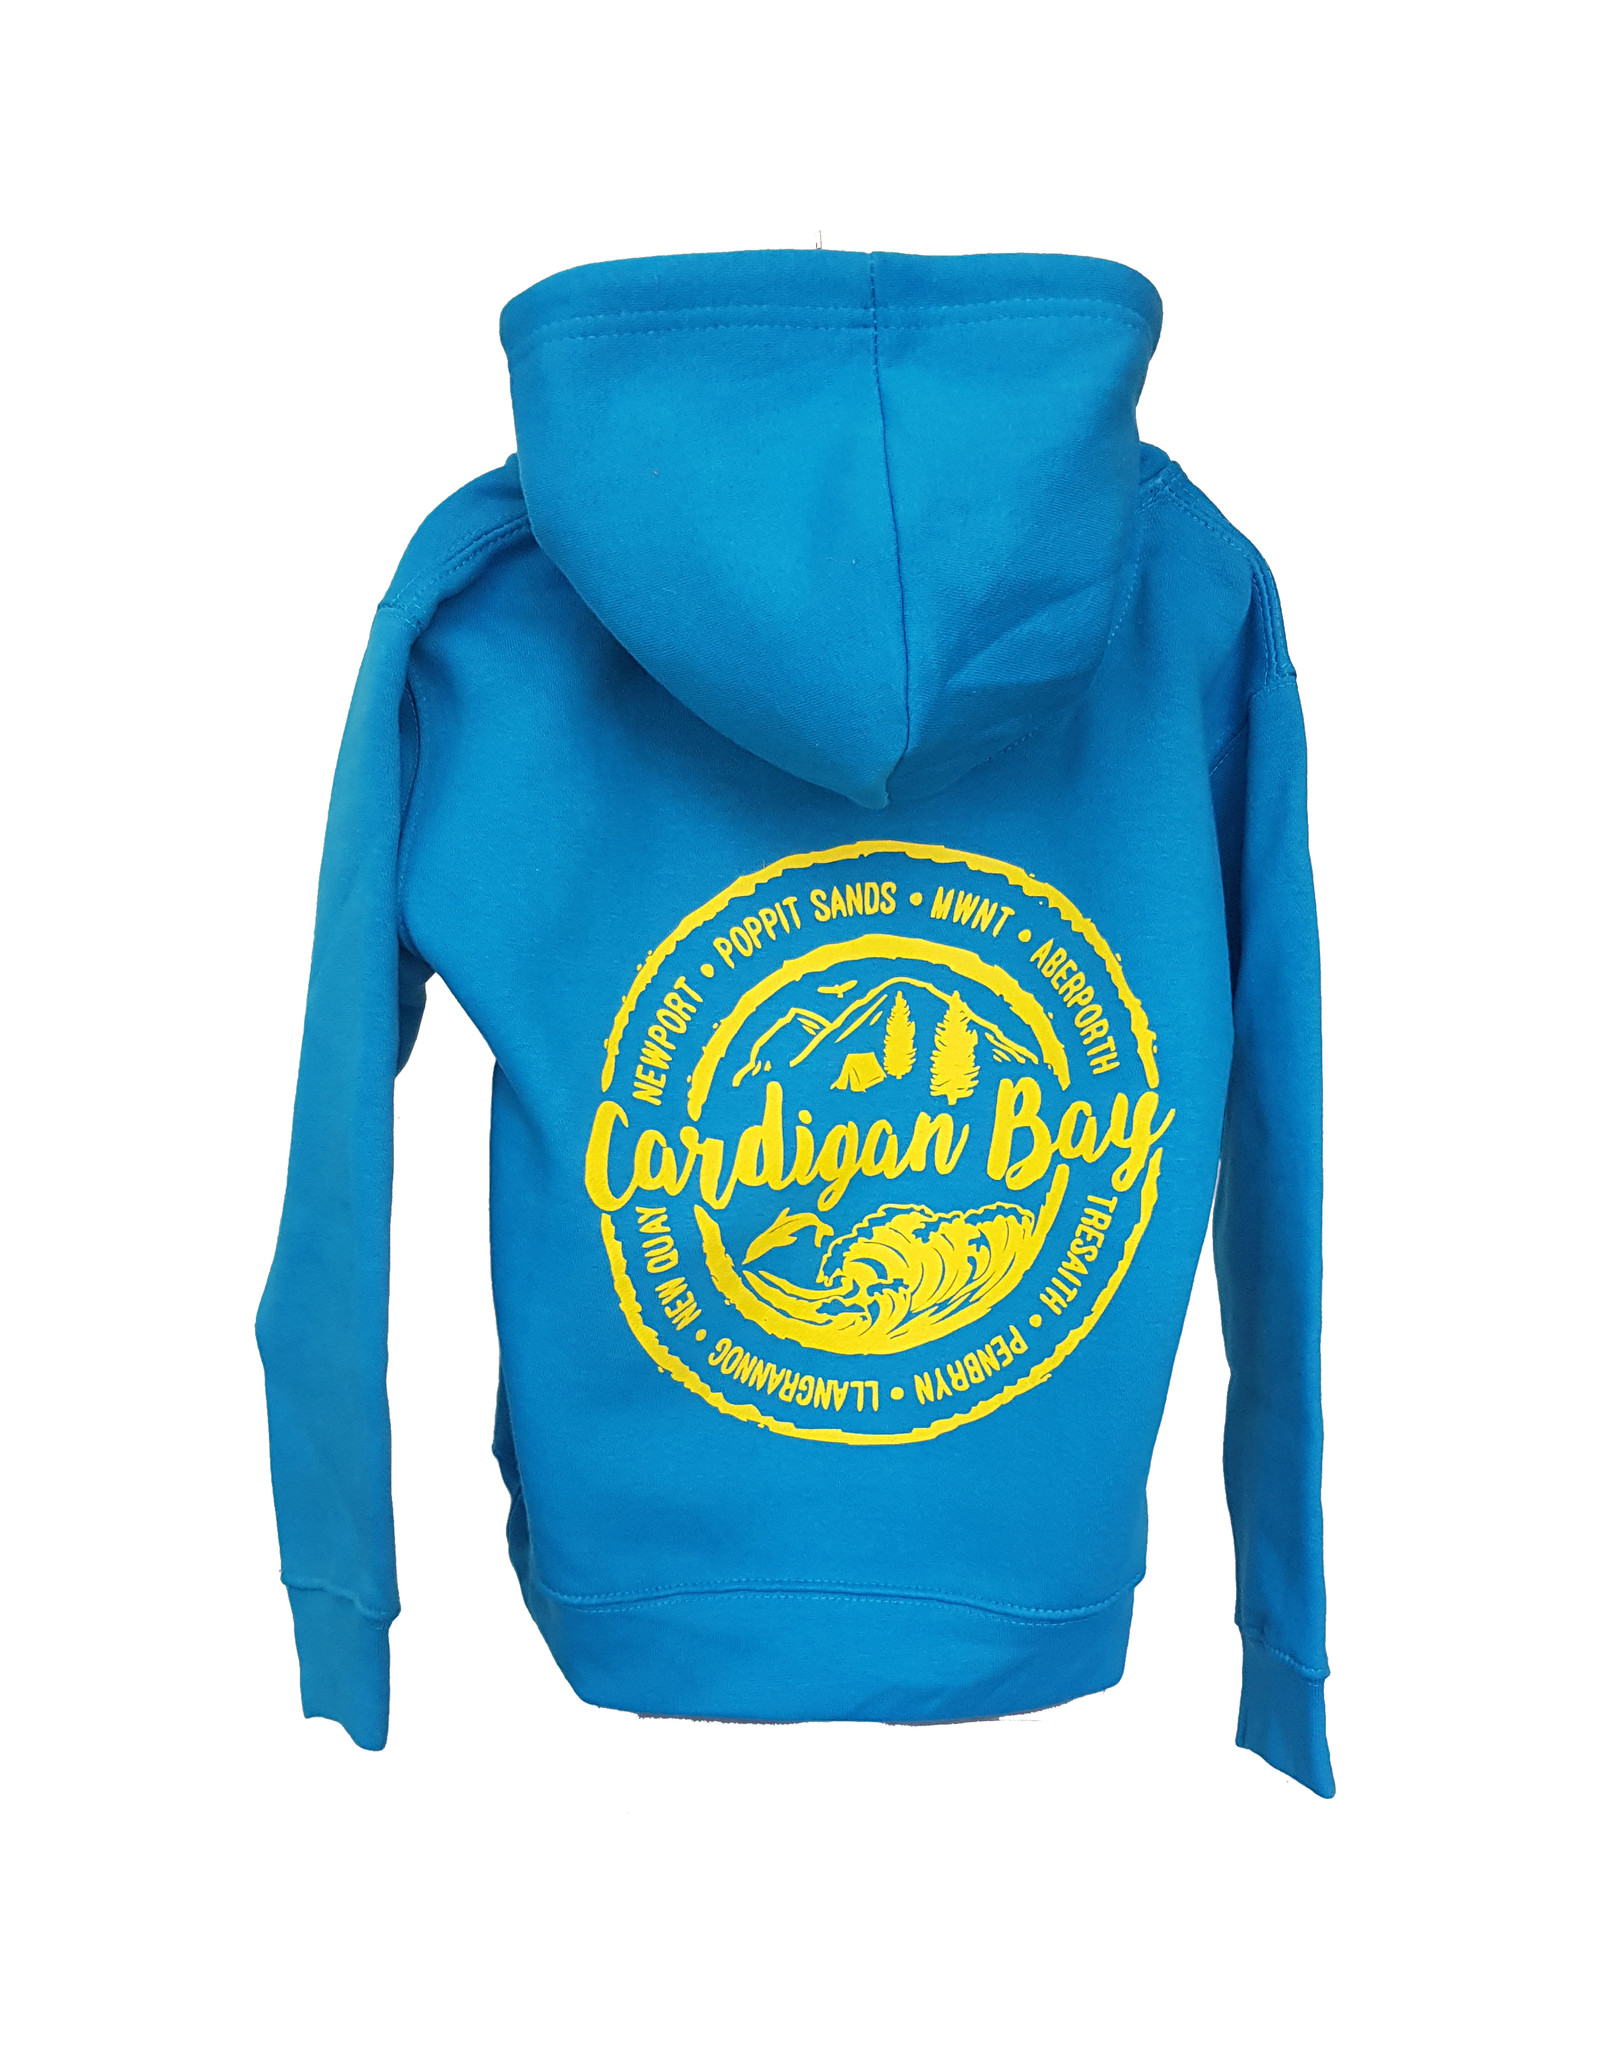 Cottonridge Cottonridge Kids Hoody - Cardigan Bay Tent